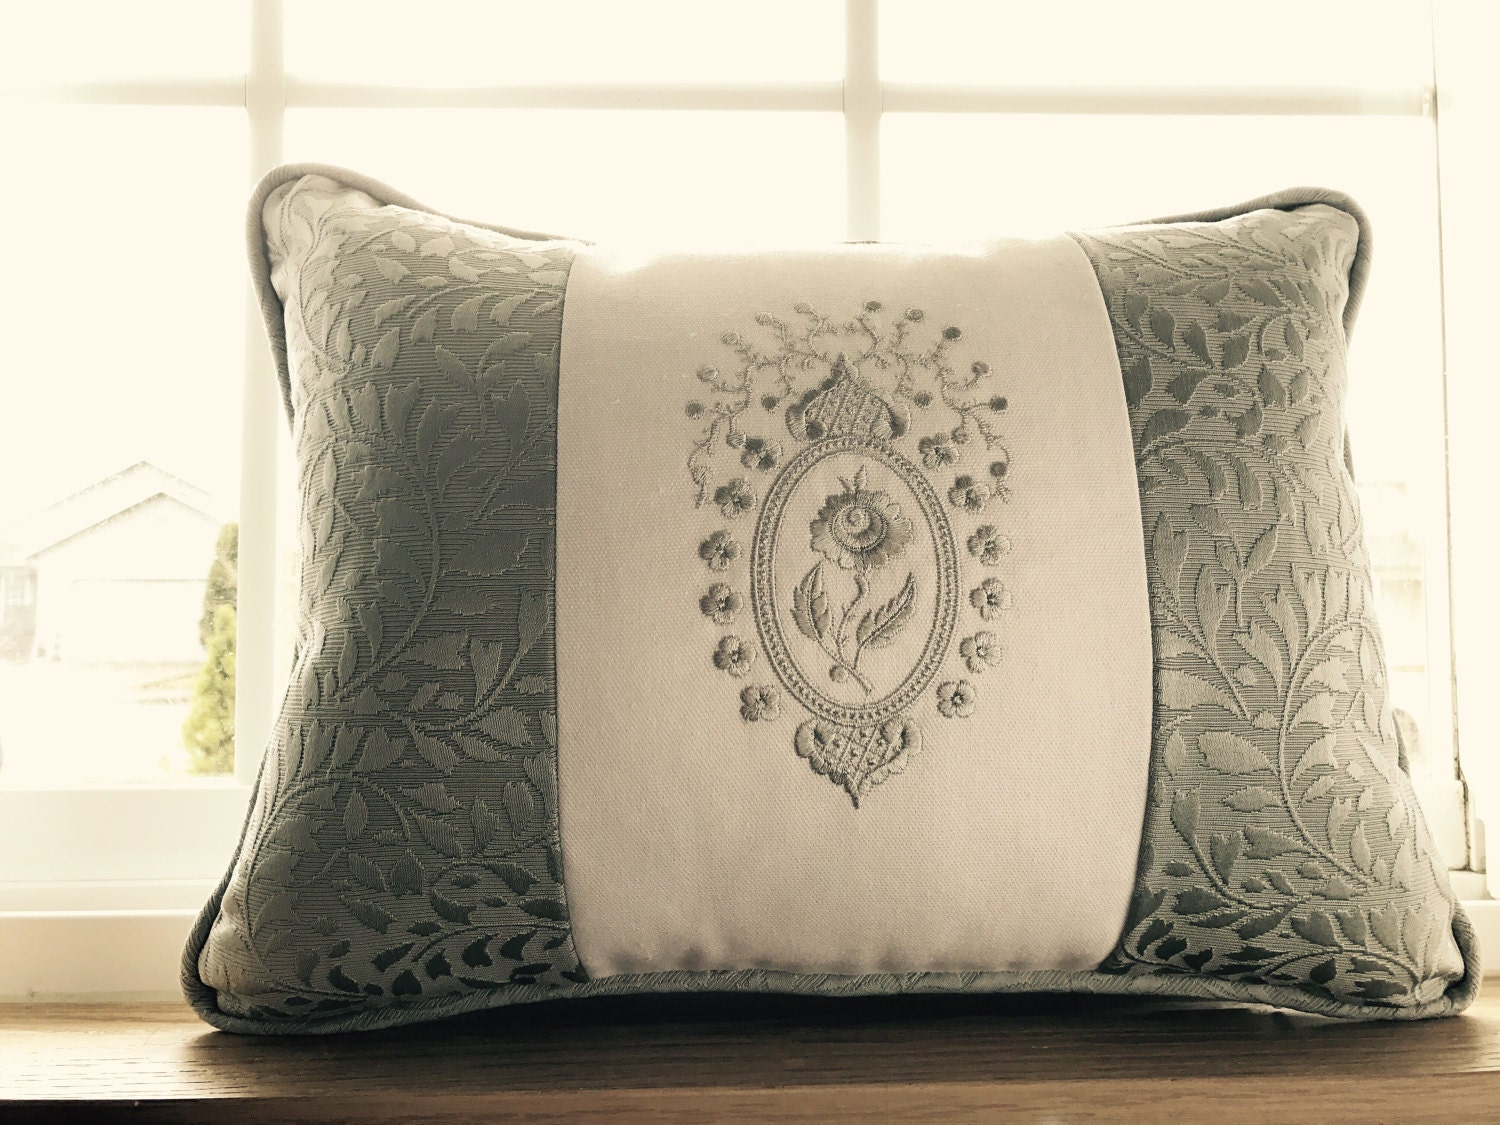 DAR Rose Medallion Blue Grey Embroidered Pillow